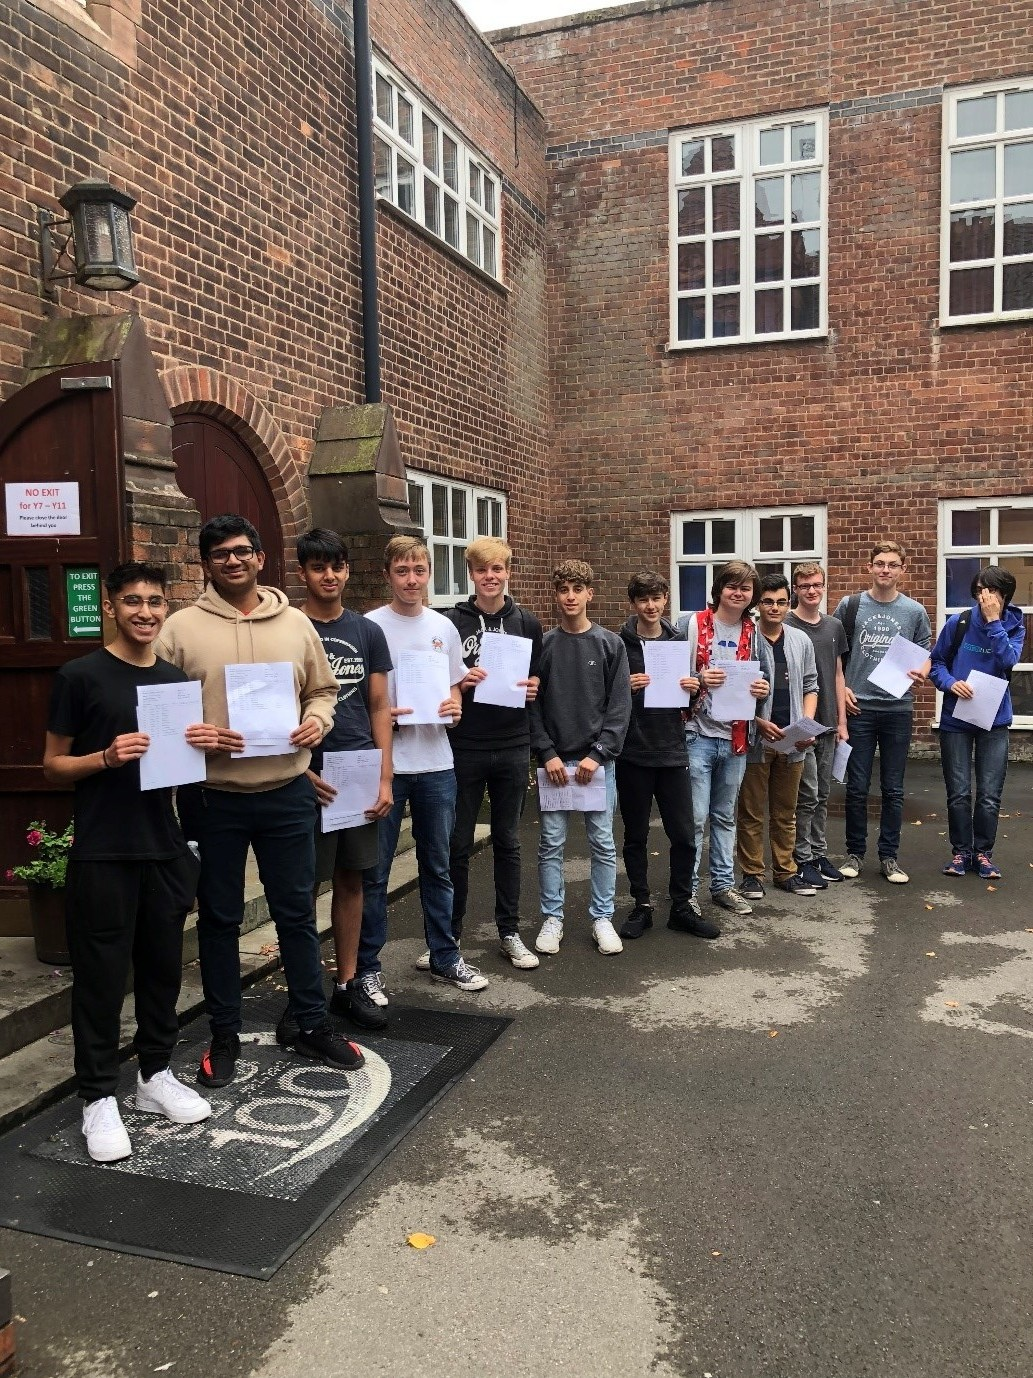 Students at Altrincham Grammar School for Boys are celebrating outstanding GCSE results this year.